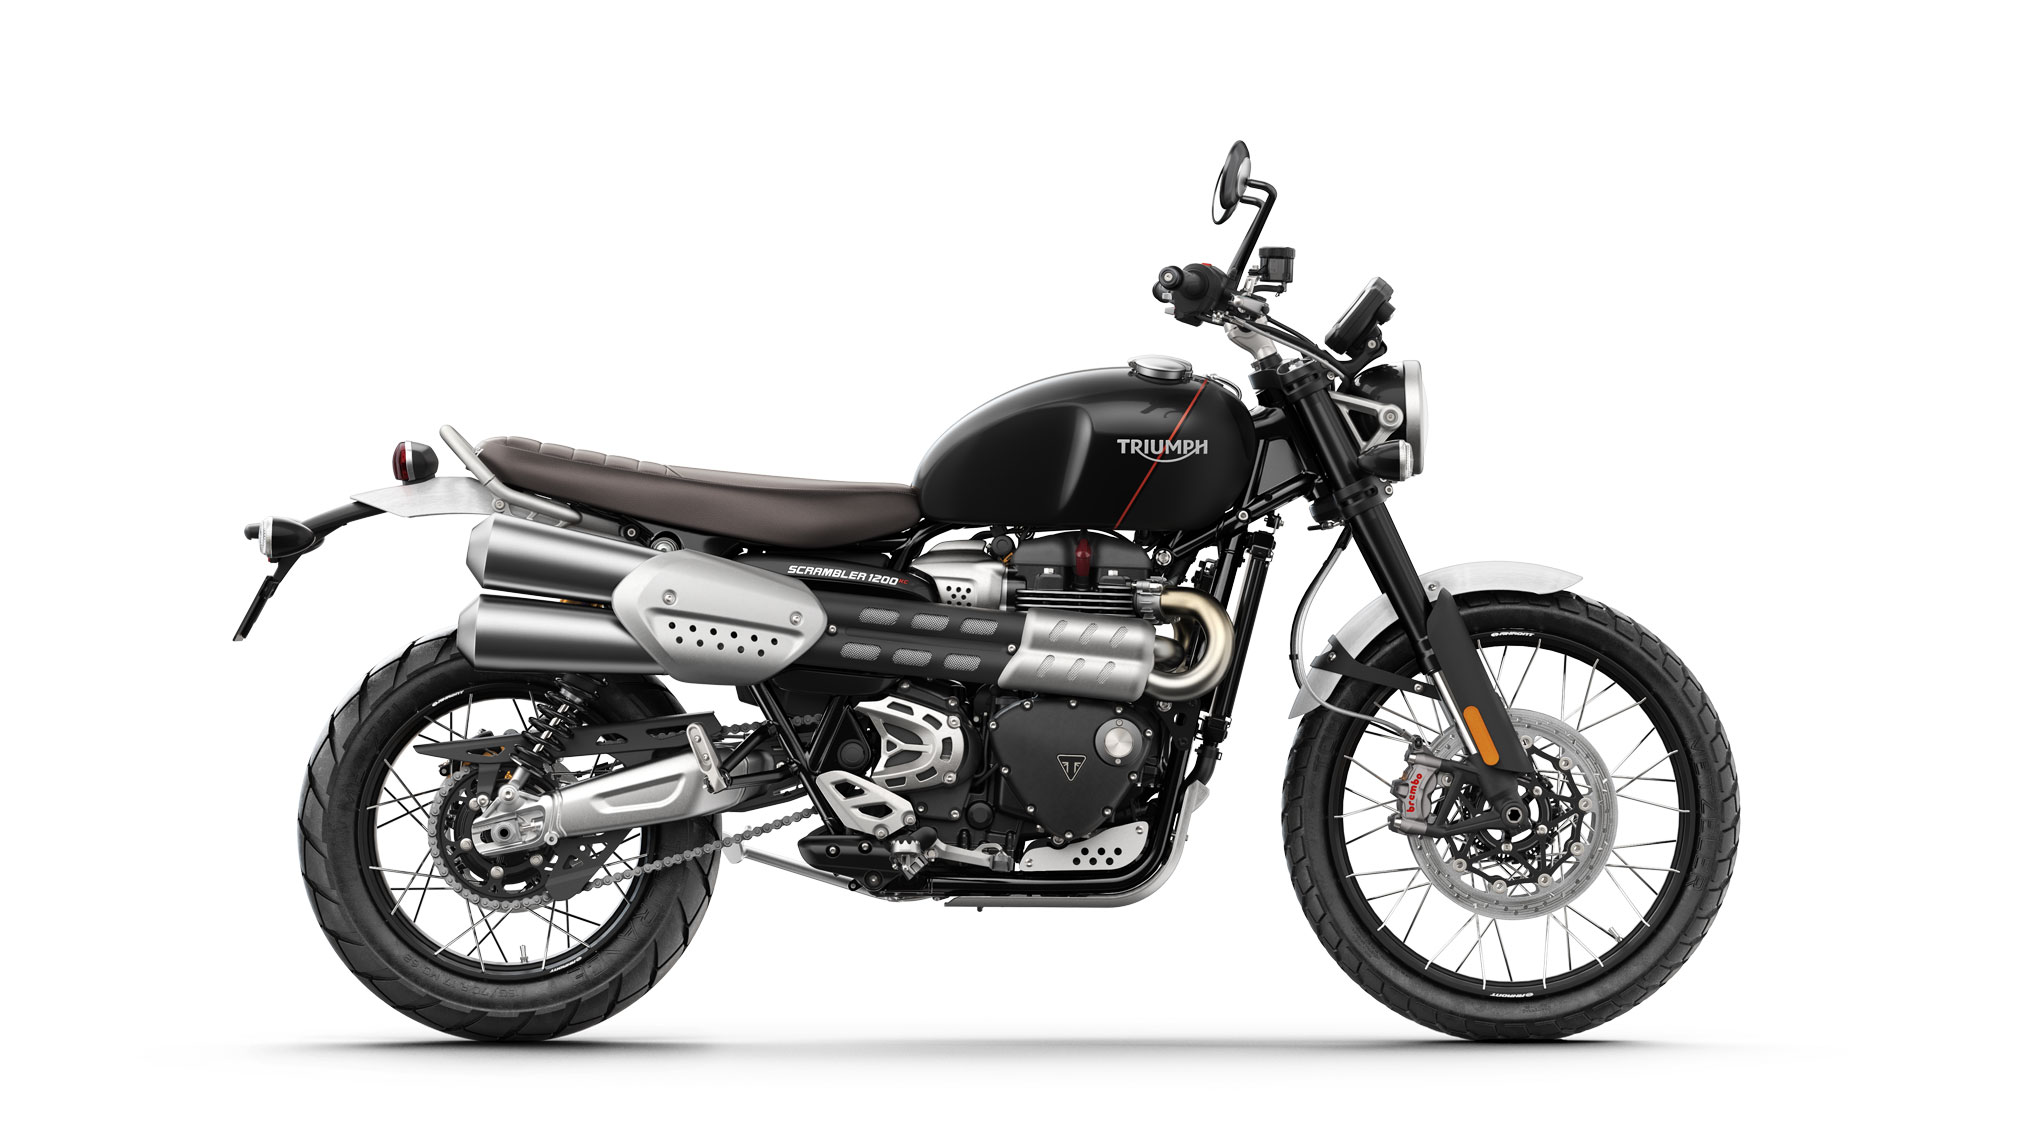 2019 Triumph Scrambler 1200XC Guide • Total Motorcycle